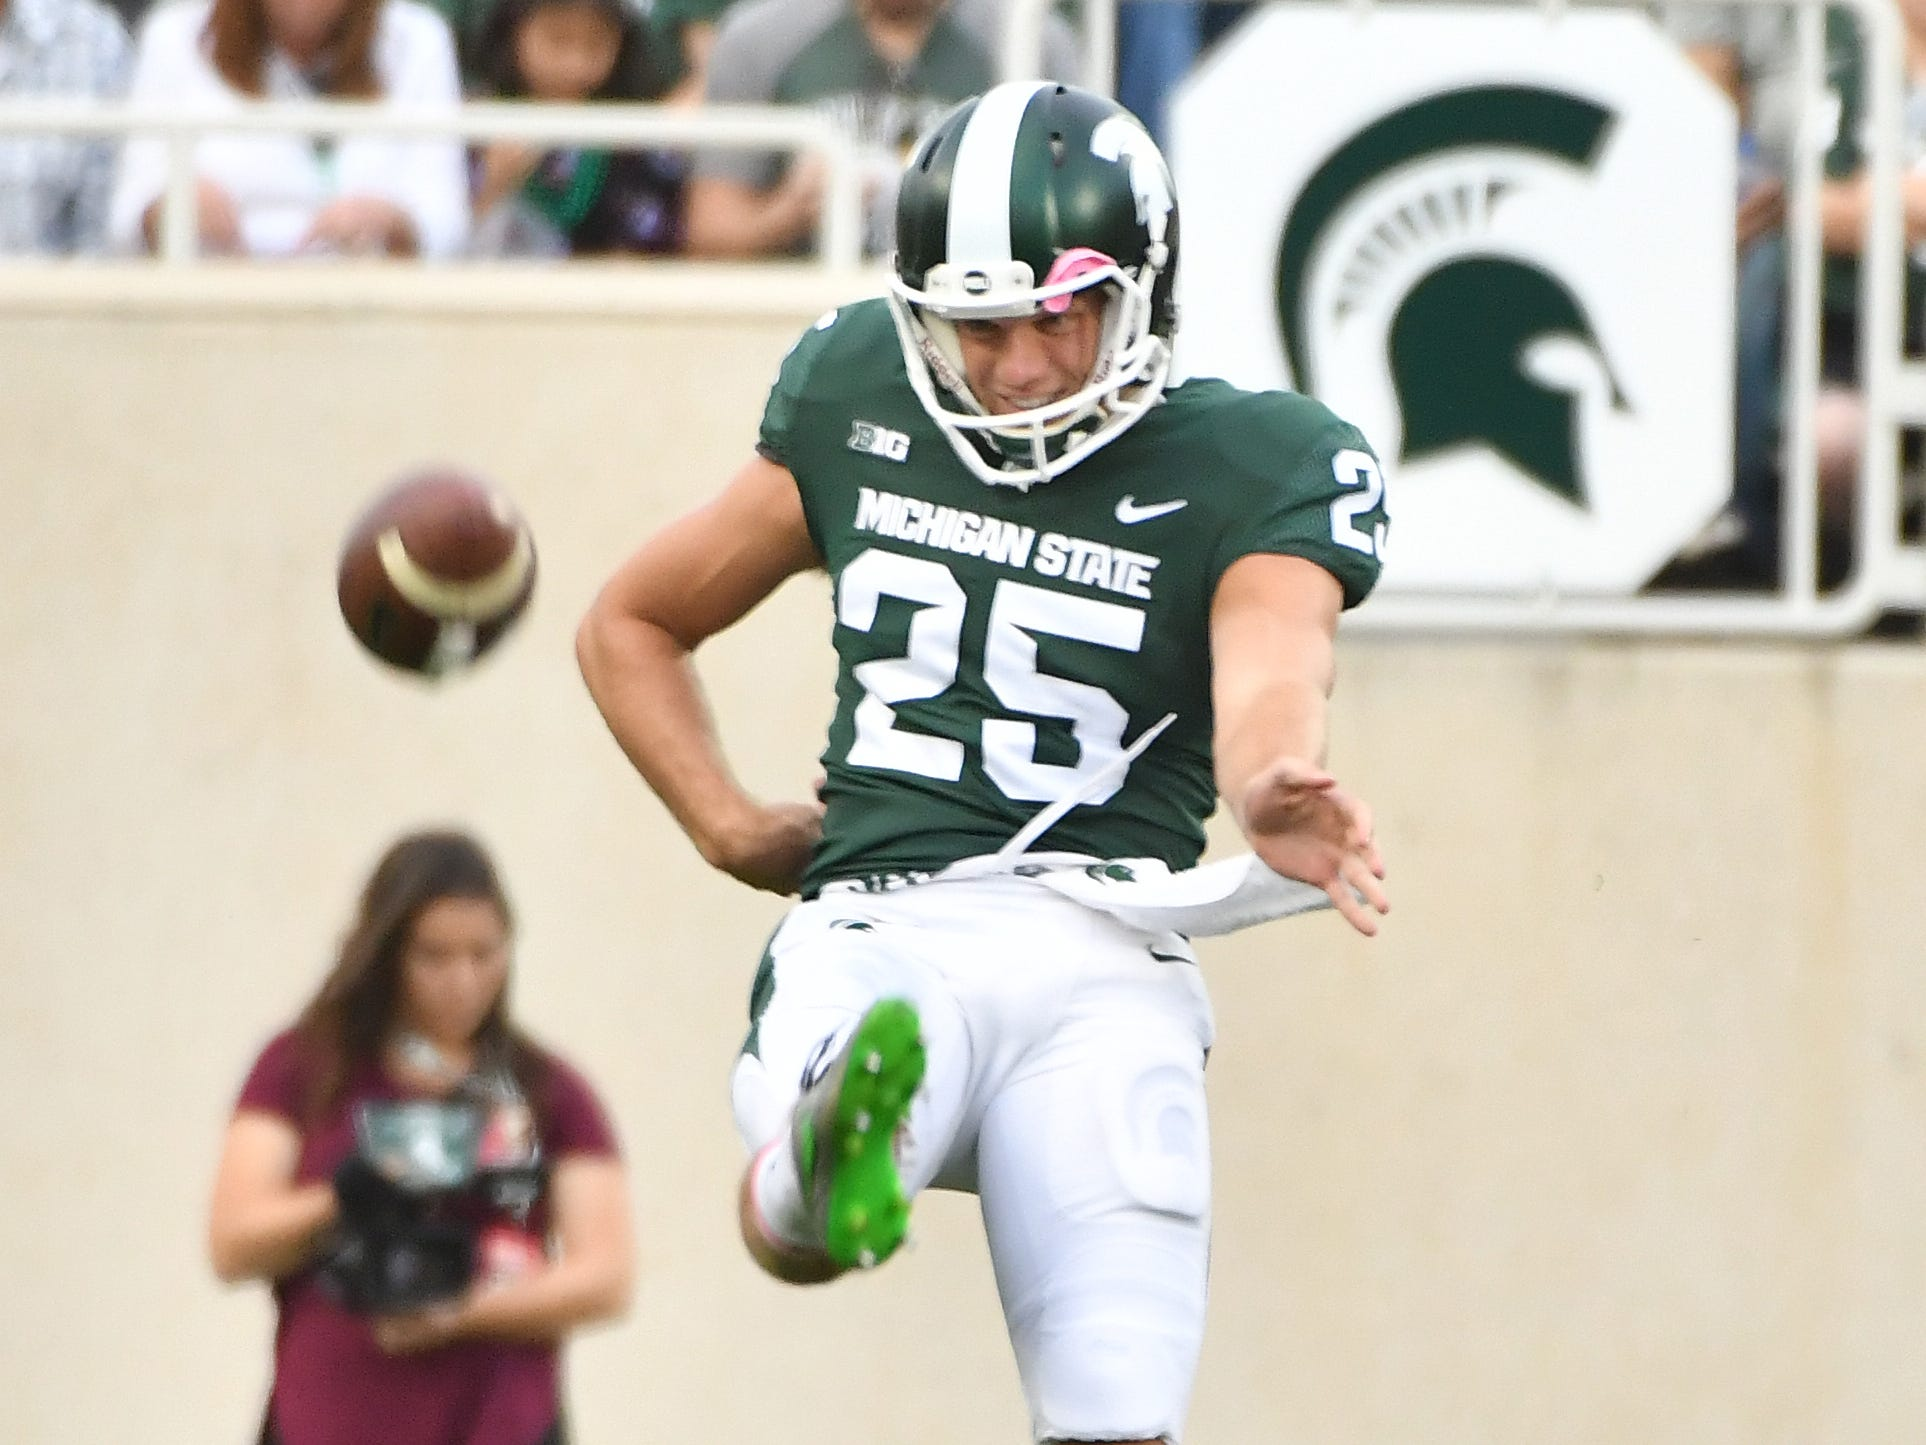 SPECIAL TEAMS – PUNTER: Jake Hartbarger – He'll be back for a sixth season after suffering a broken leg in the second week of last season. His presence will help solidify a position that saw five different players punt the ball in 2018.